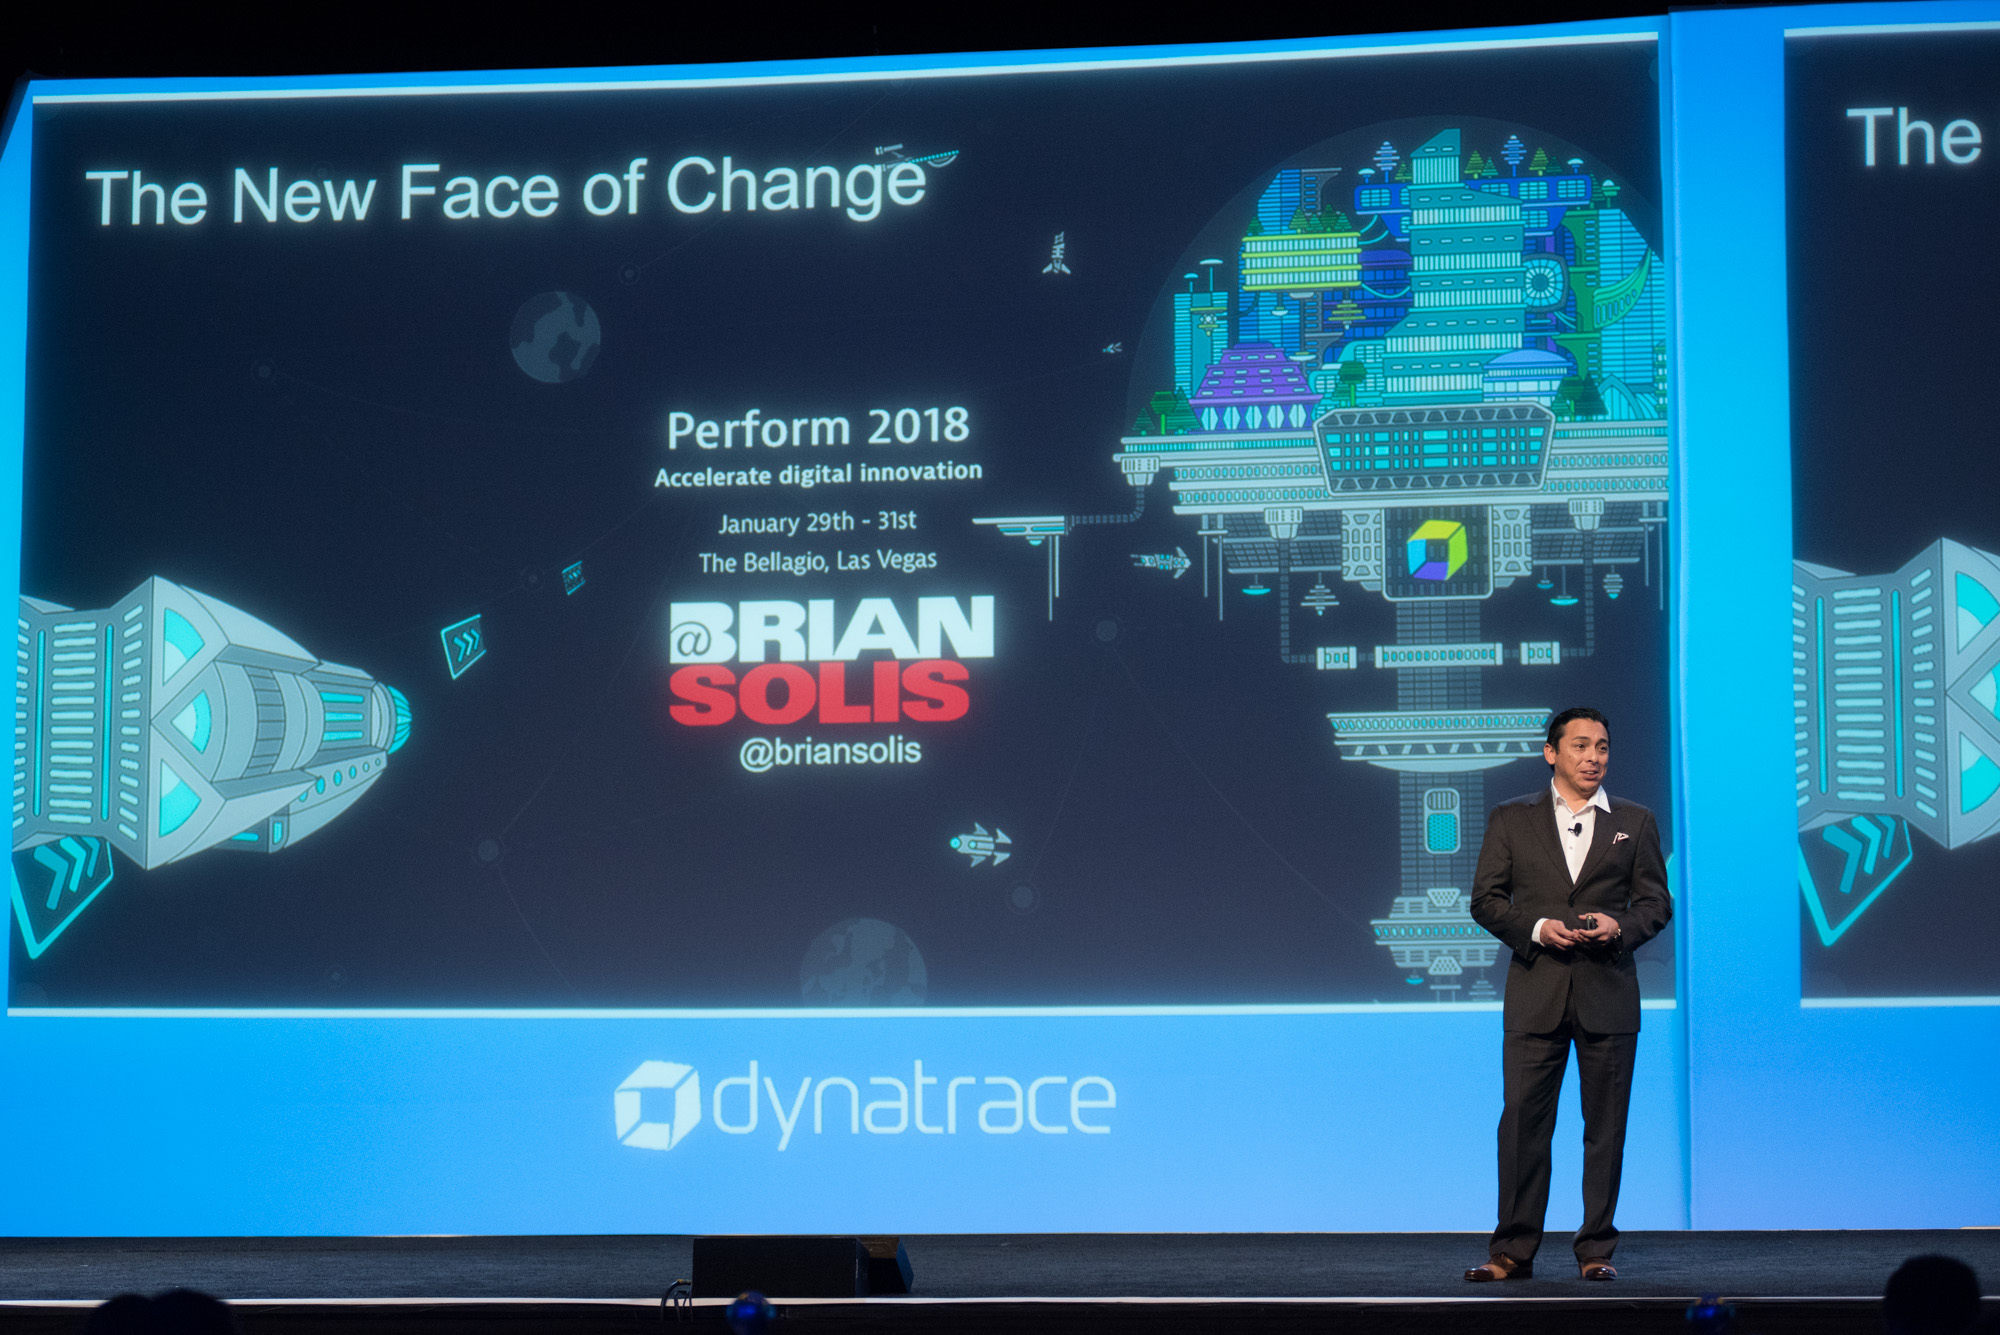 Brian Solis presenting at perform 2018 main stage